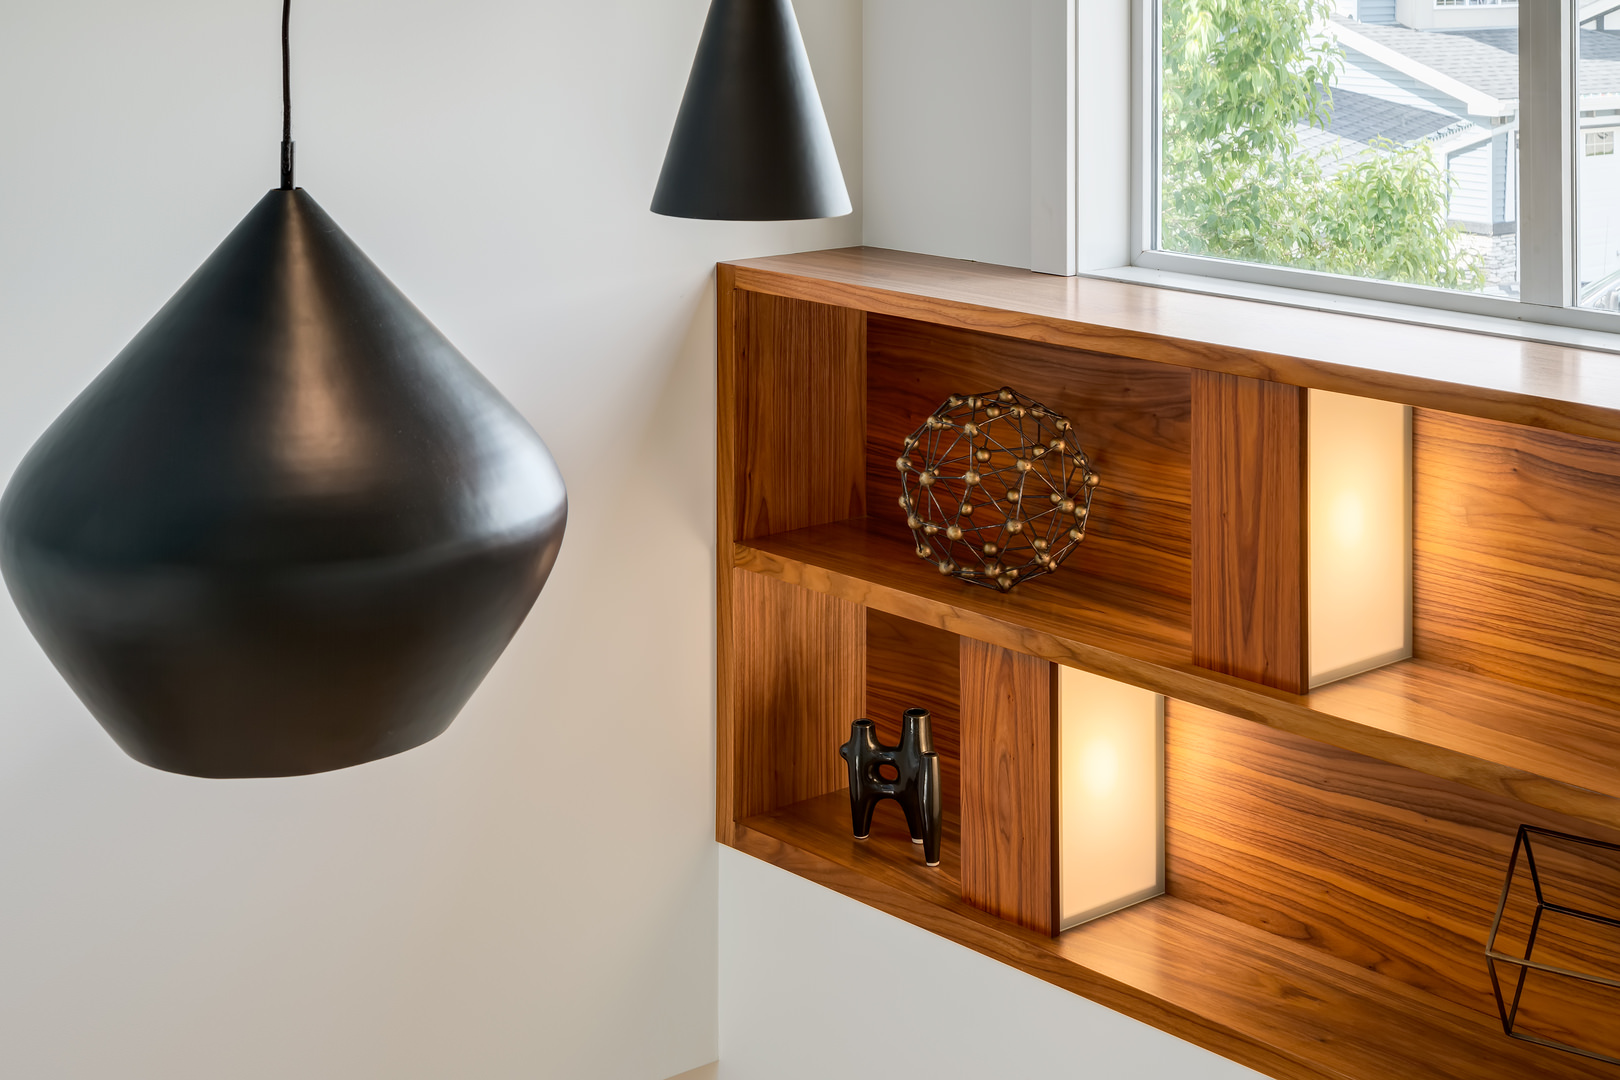 Contemporary lighting fixtures pair with natural wood and recessed shelf lighting.